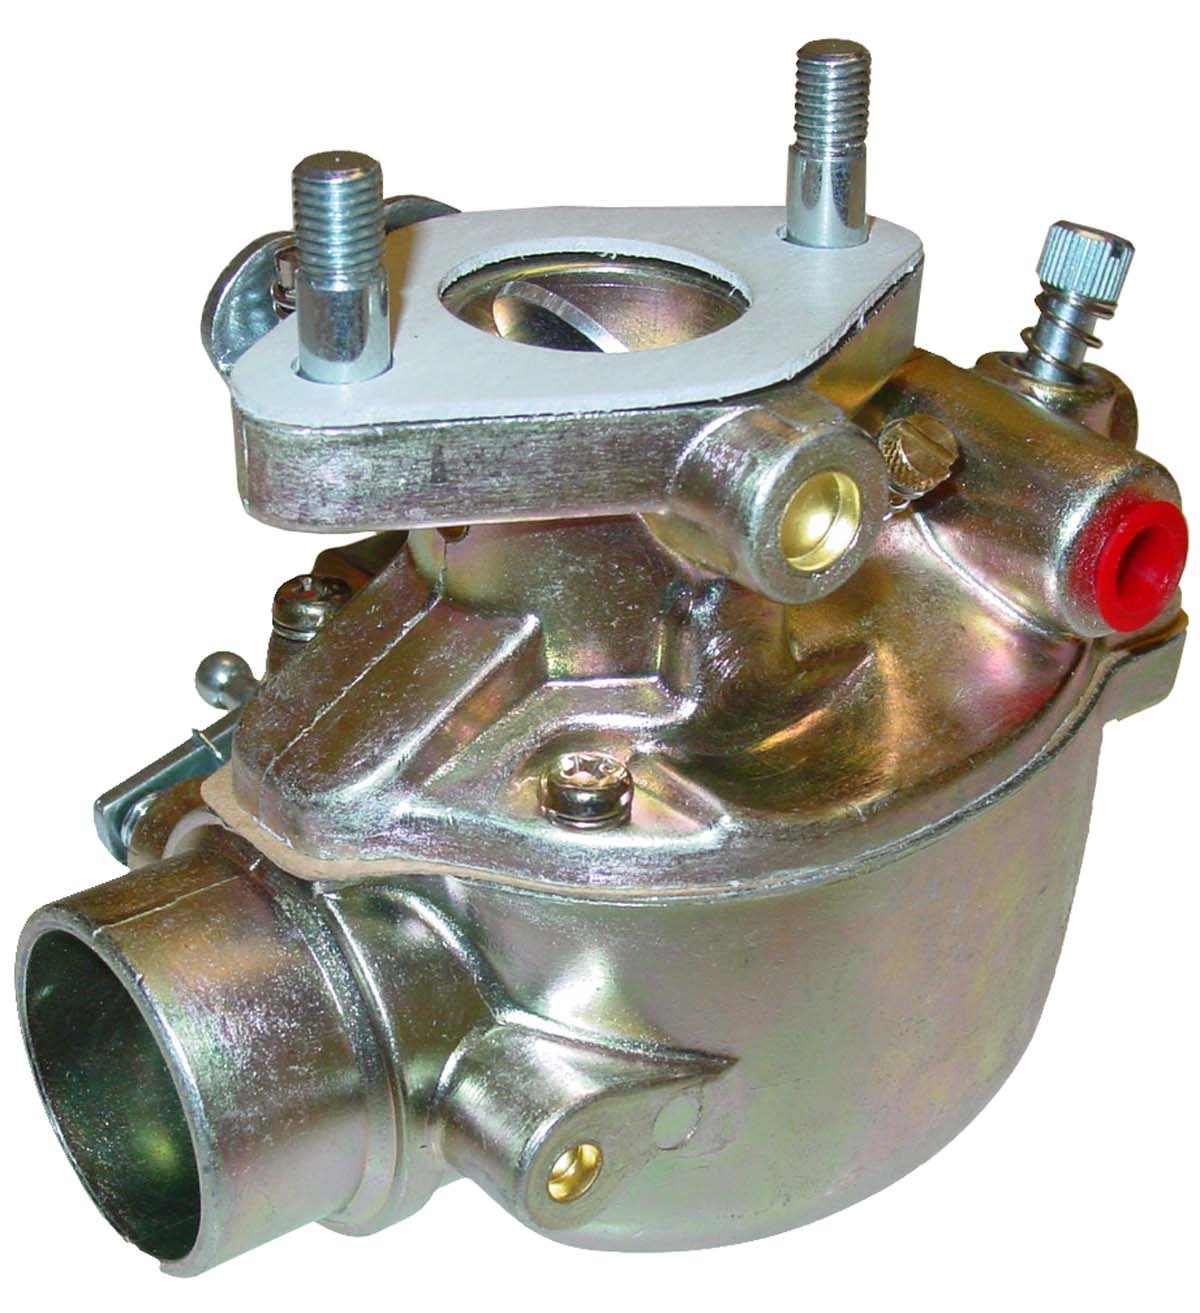 Ford 9 N Tractor Parts Is Your Car 9n Diagram 1103 0000 Carburetor For 2n 8n